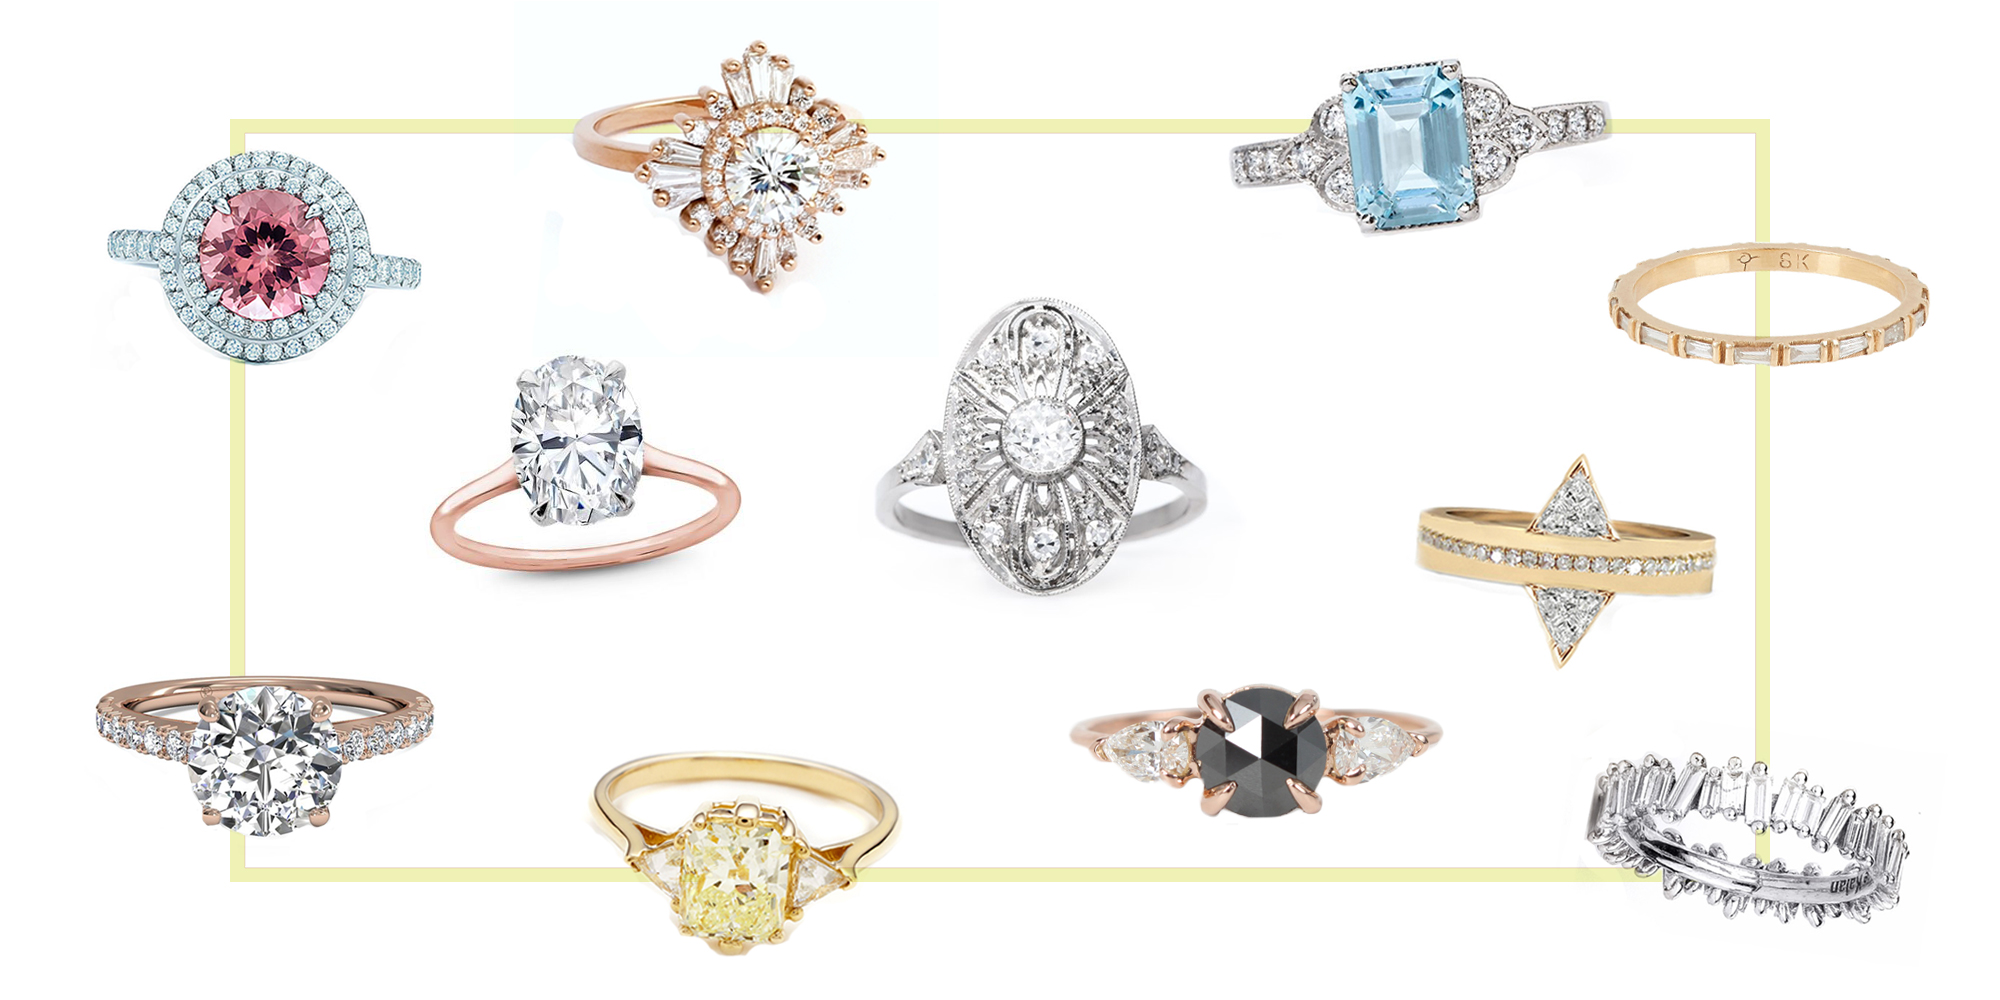 15 Best New Engagement Ring Styles In 2018 Vintage Non Traditional Engagement Rings